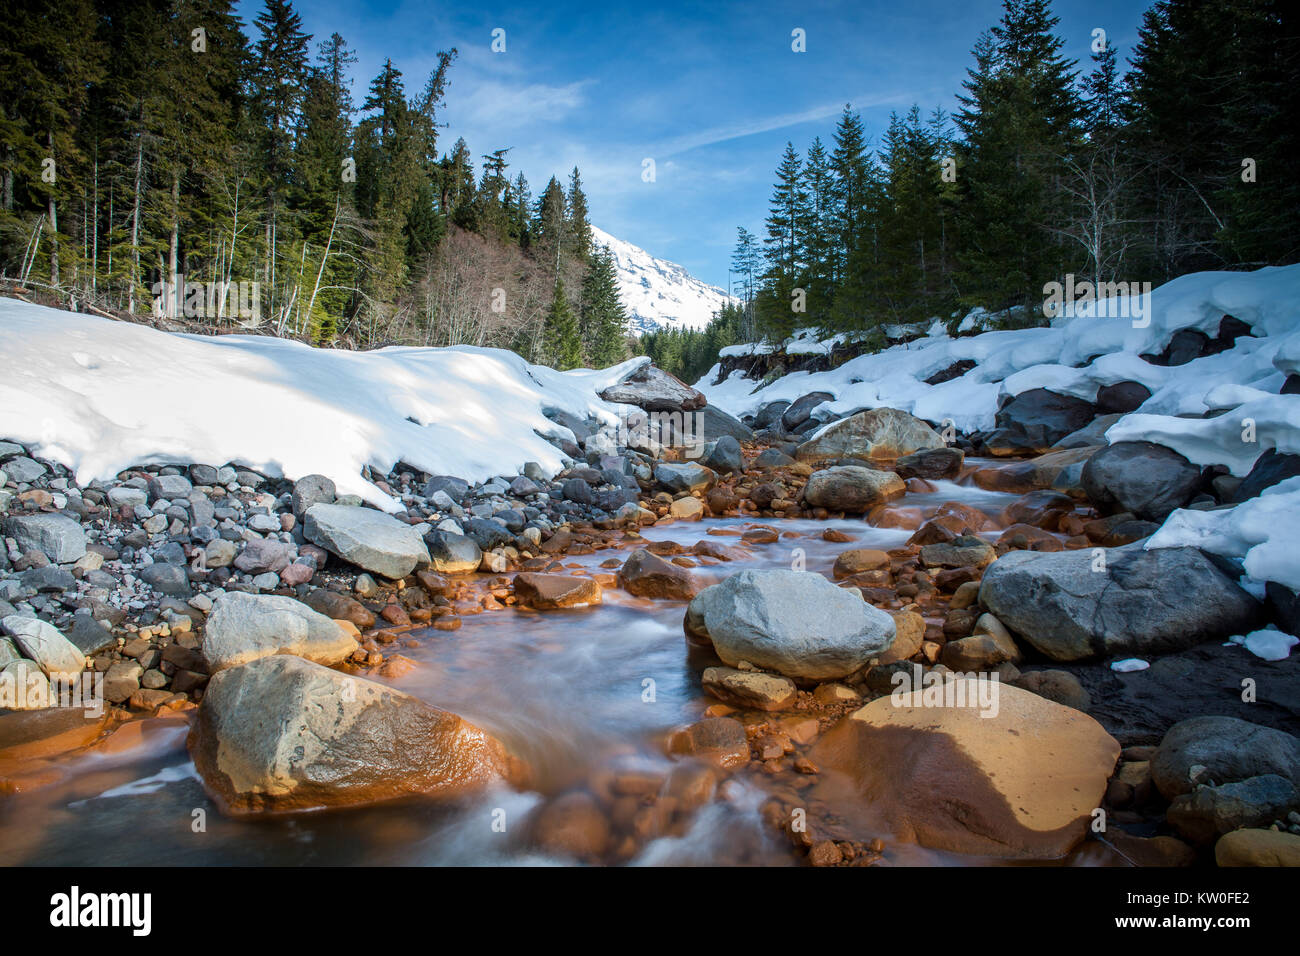 Kautz Creek is a tributary of the Nisqually River flowing from the Kautz glacier in Mt. Ranier National park.  It - Stock Image